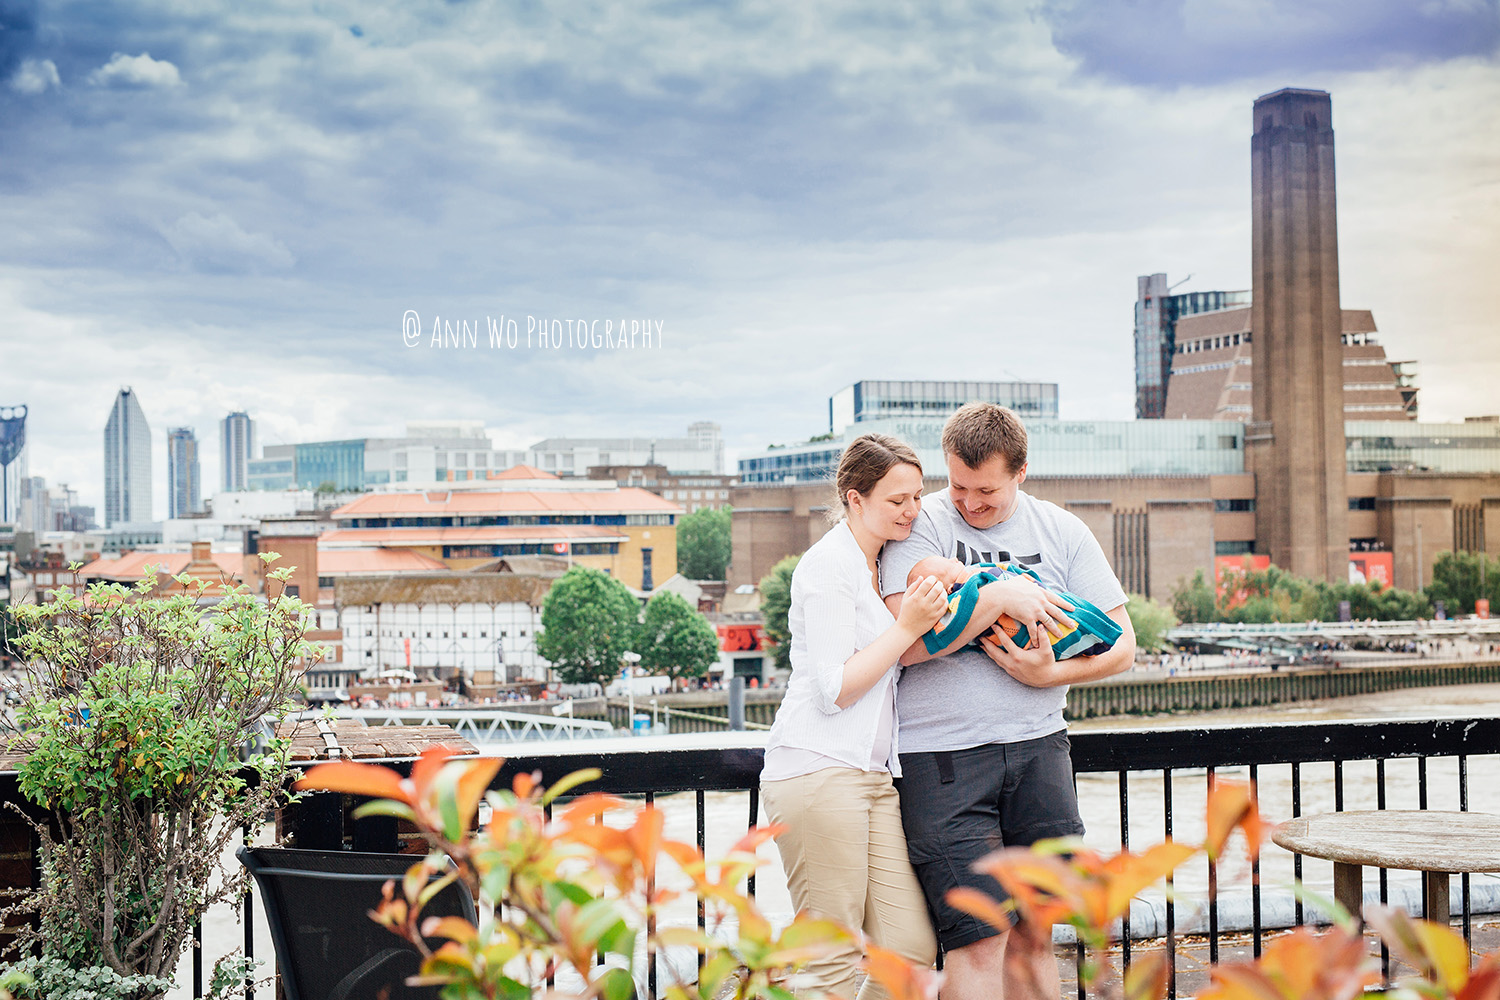 london-family-photo-session-newborn-baby-ann-wo-photography.jpg